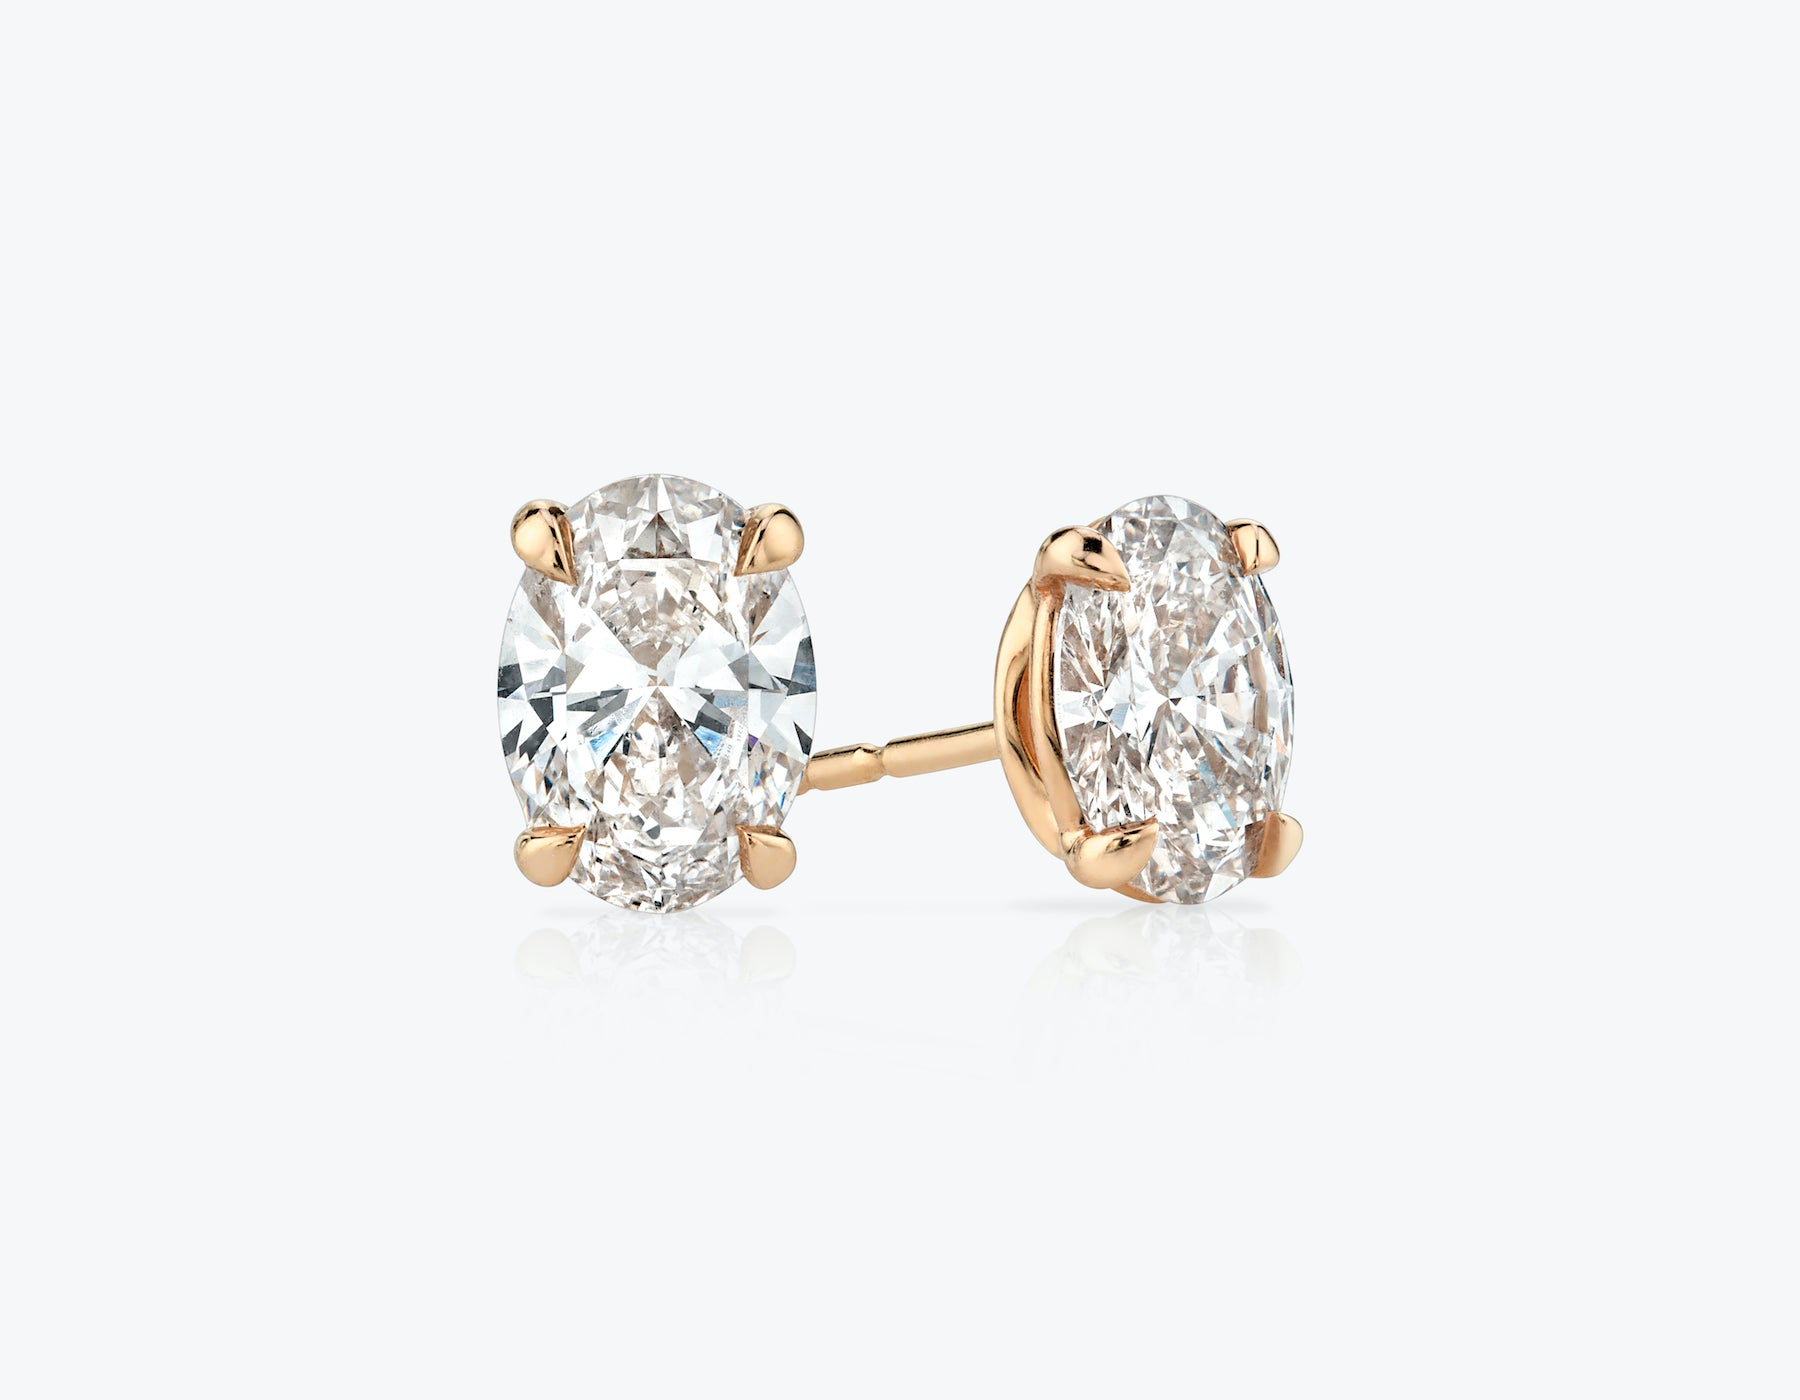 Vrai 1ct Solitaire Oval Created Diamond Studs, 14K Rose Gold